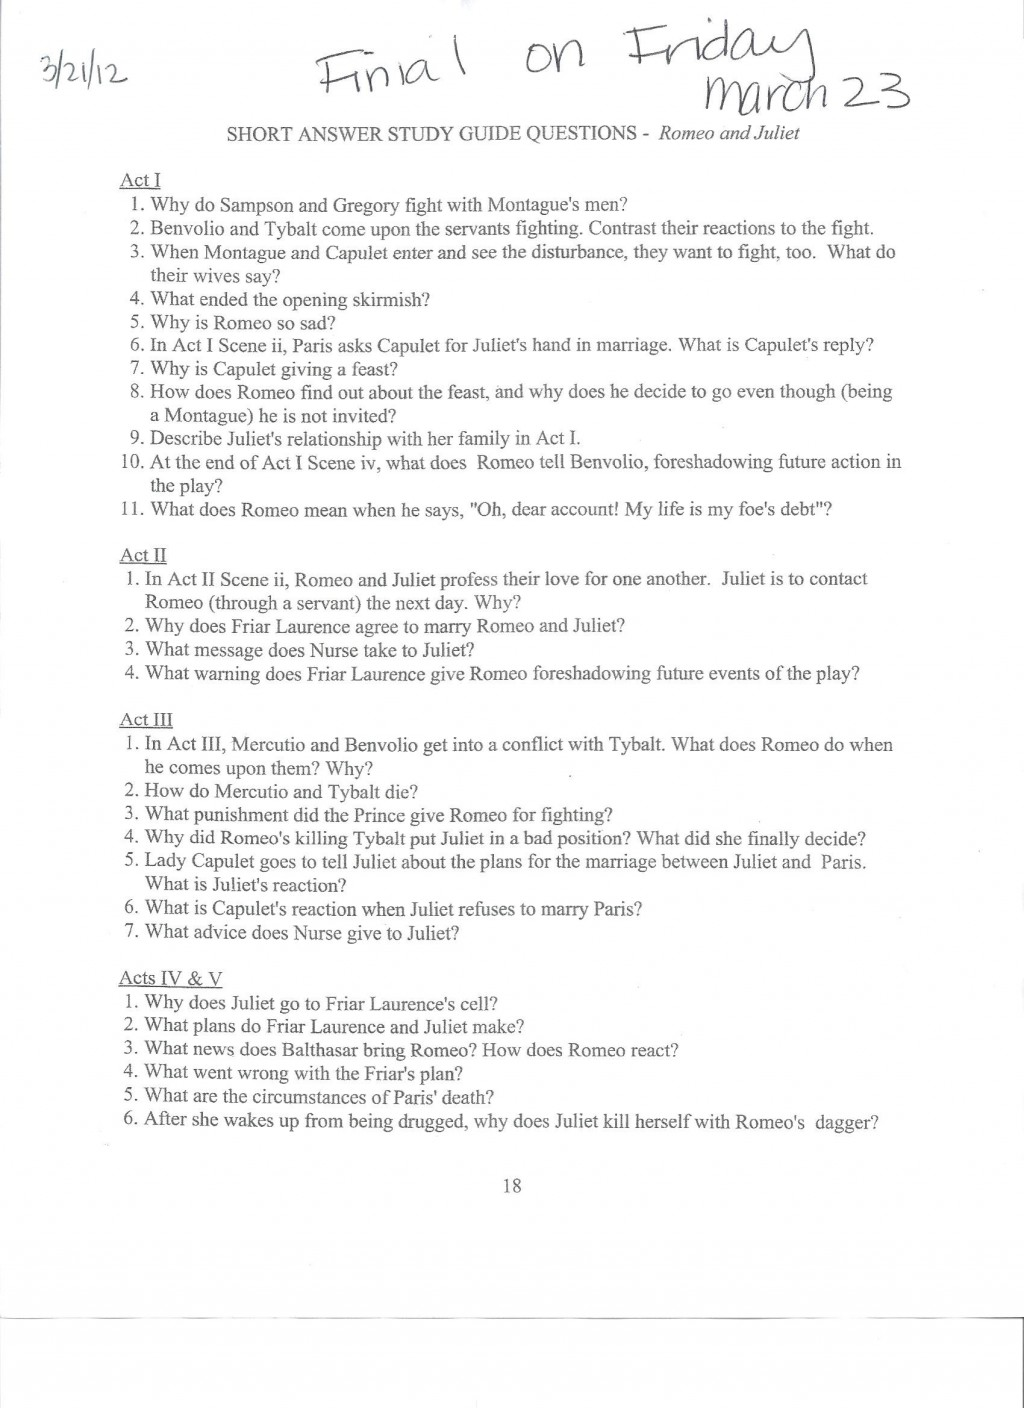 001 Essay Example English201203 21 1220romeo20and20juliet20study20guide Romeo And Juliet Astounding Topics Pdf Questions Grade 10 Answers Large